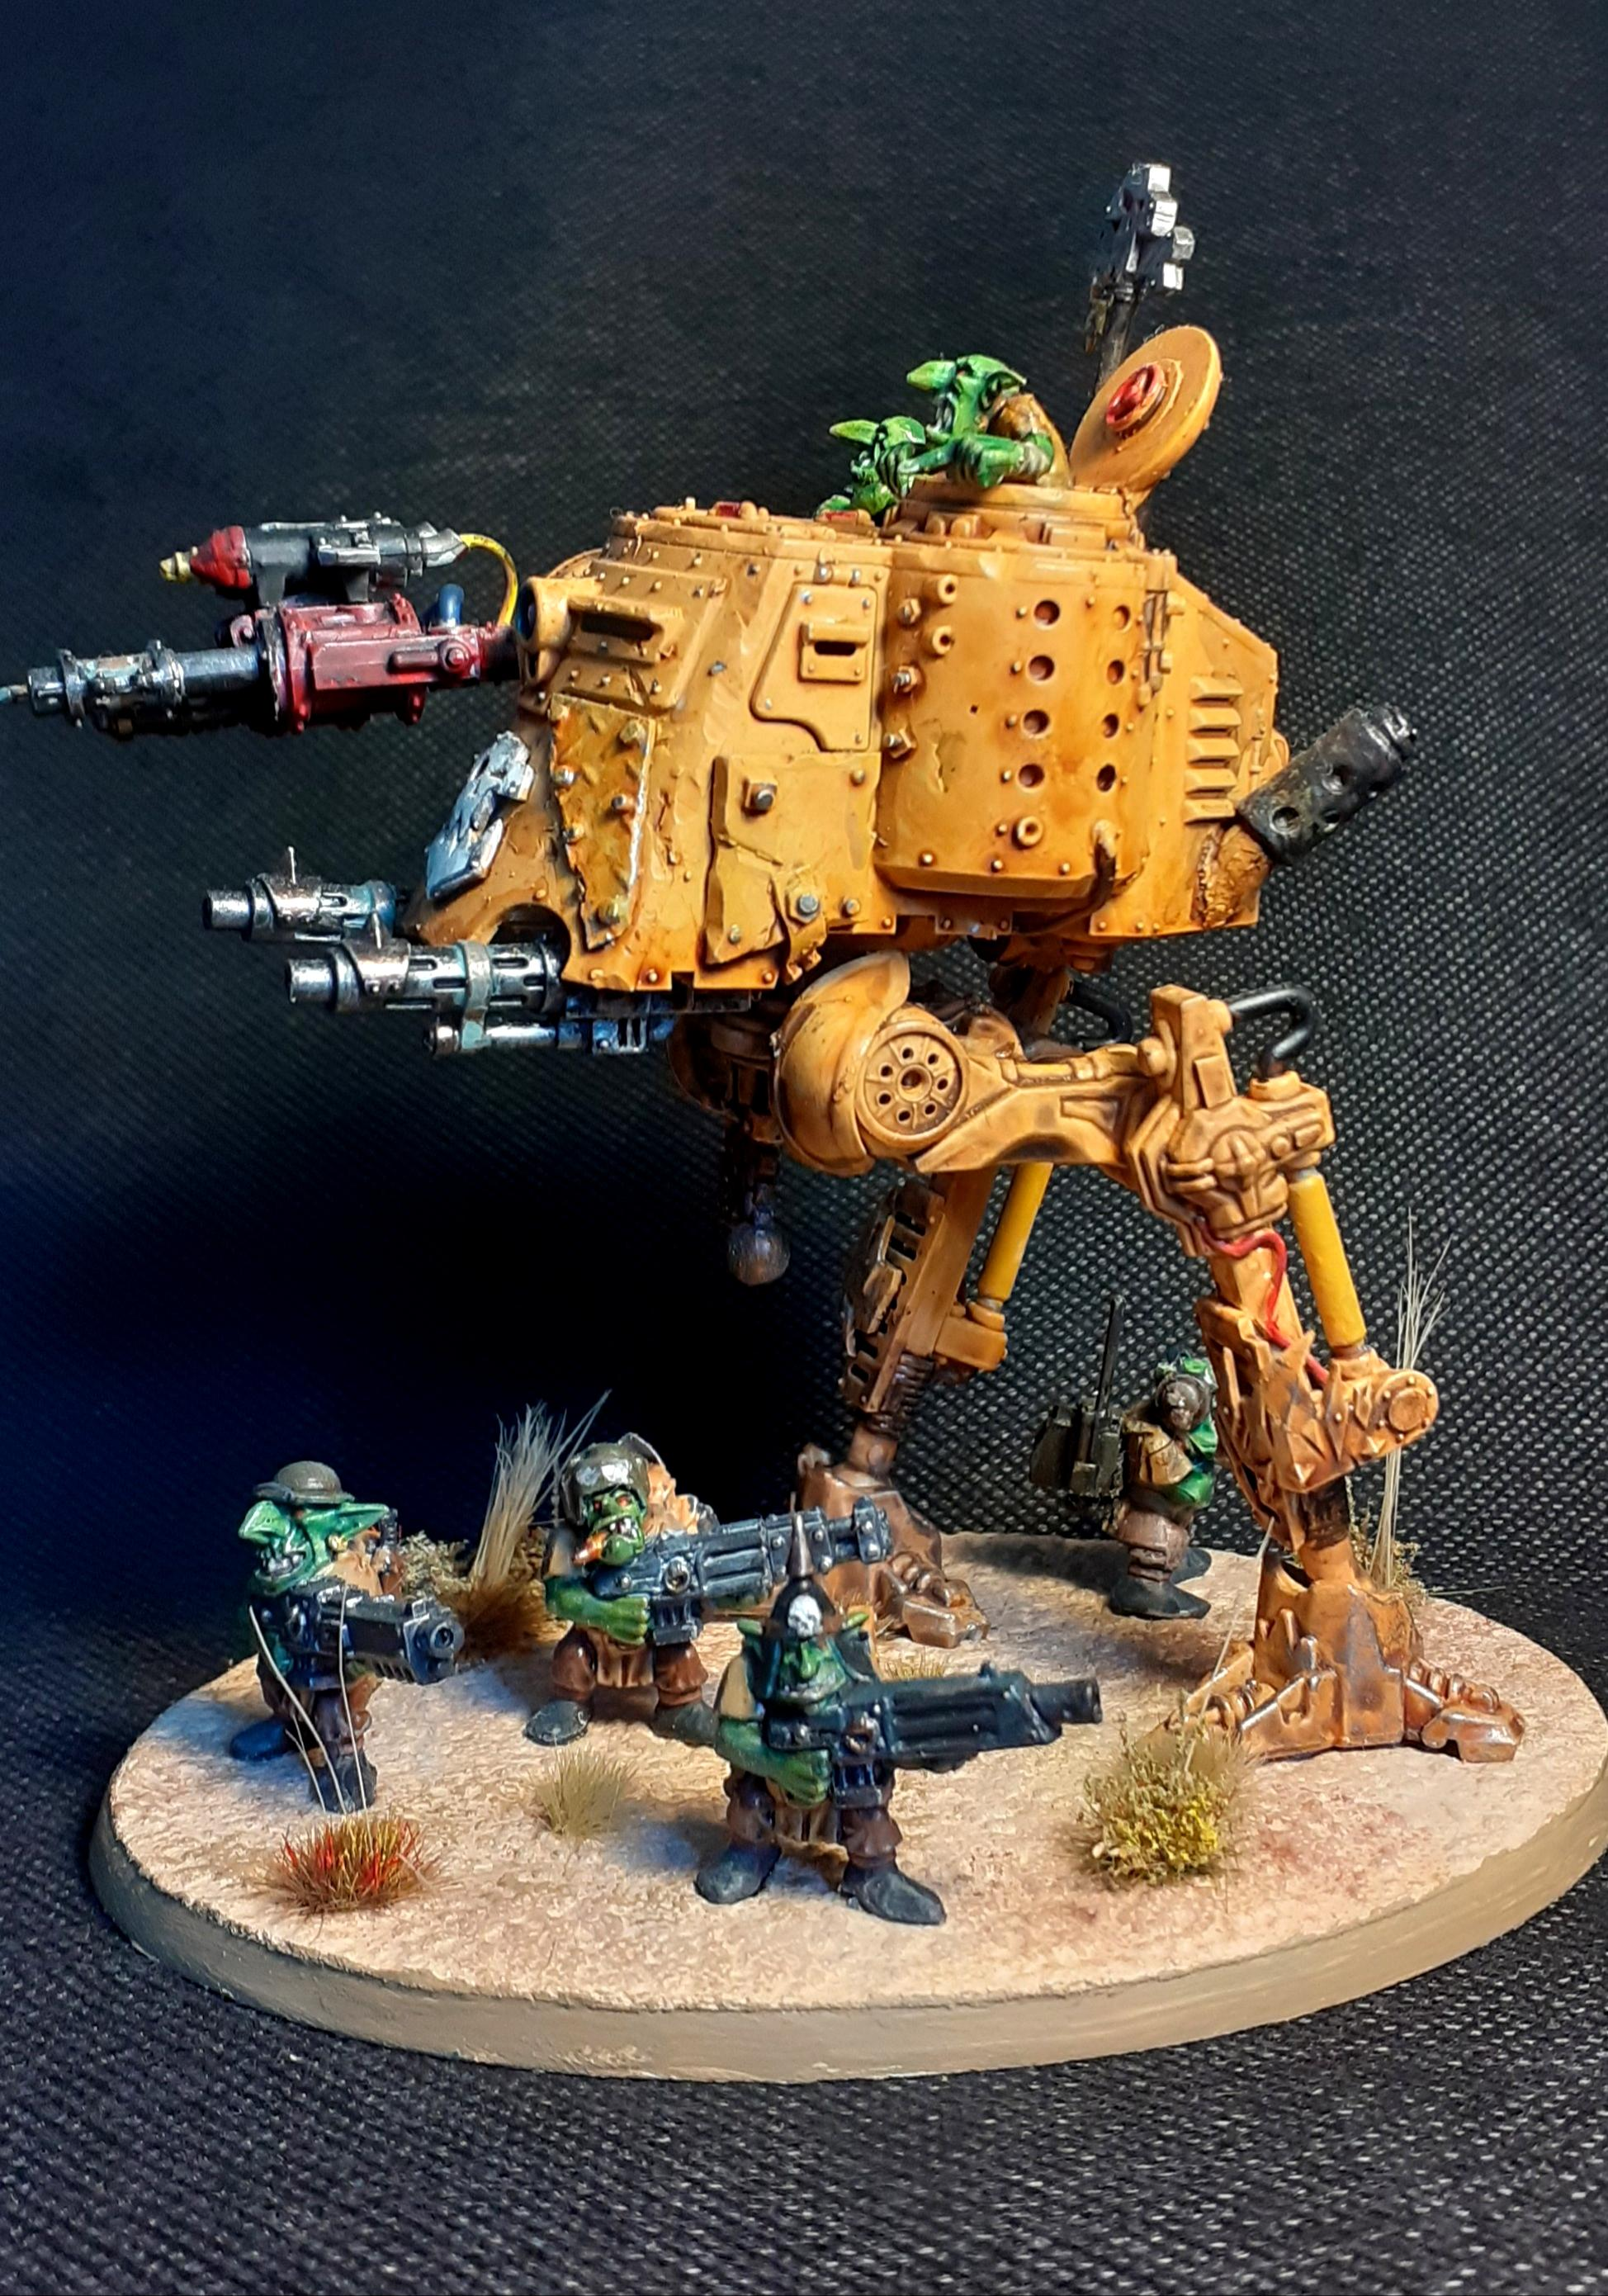 Conversion, Grot Conversion, Grot Tank, Grots, Kitbash, Kitbashed, Ork Conversions, Ork Custome Made Vehicles, Orks, Scratch Build